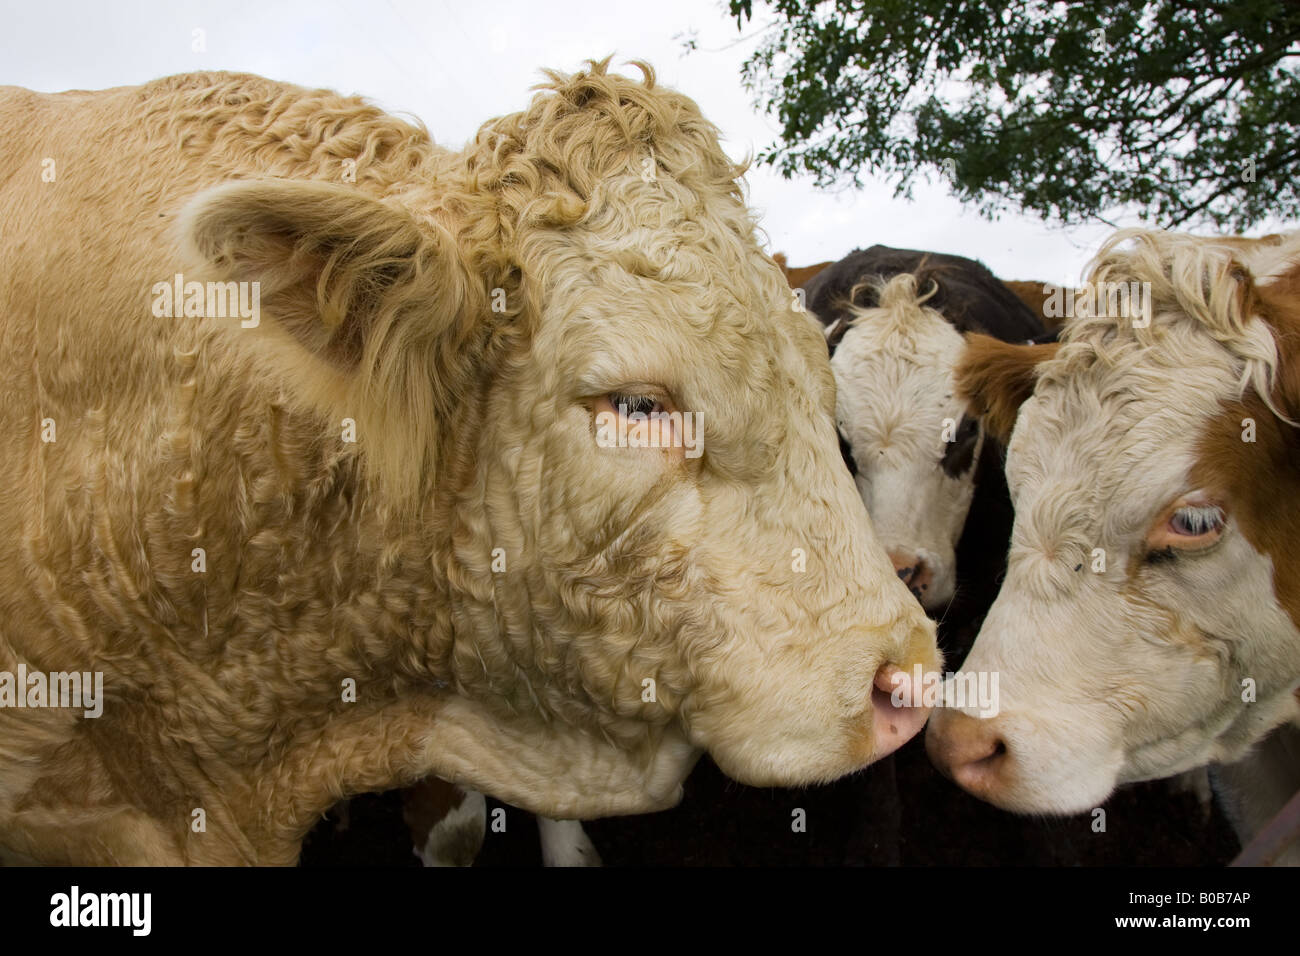 Bull nuzzles up to cows Hazleton Gloucestershire The Cotswolds England United Kingdom - Stock Image